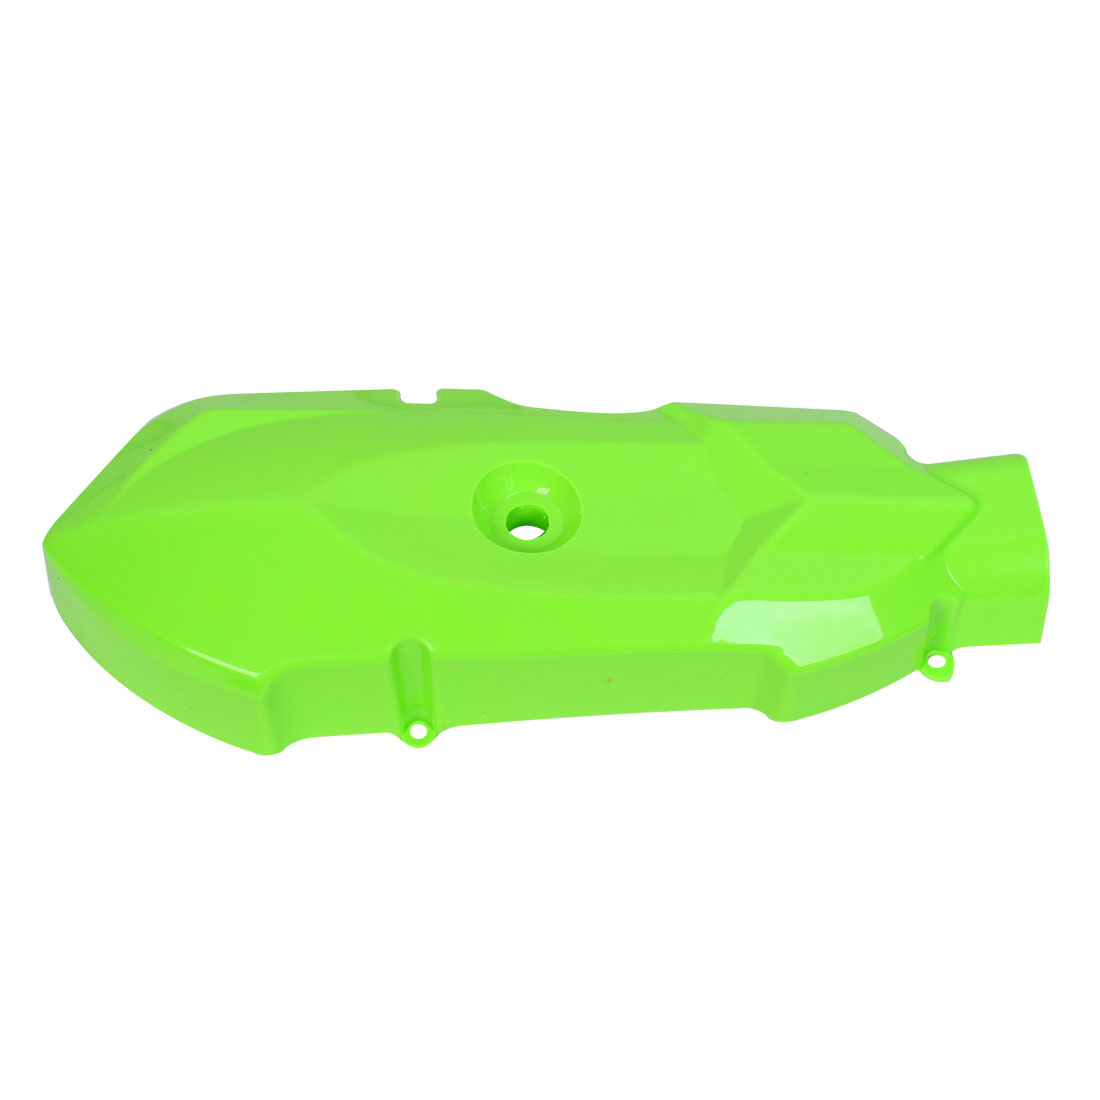 Green Plastic Motorcycle Side Cover Replacing Part for GY6